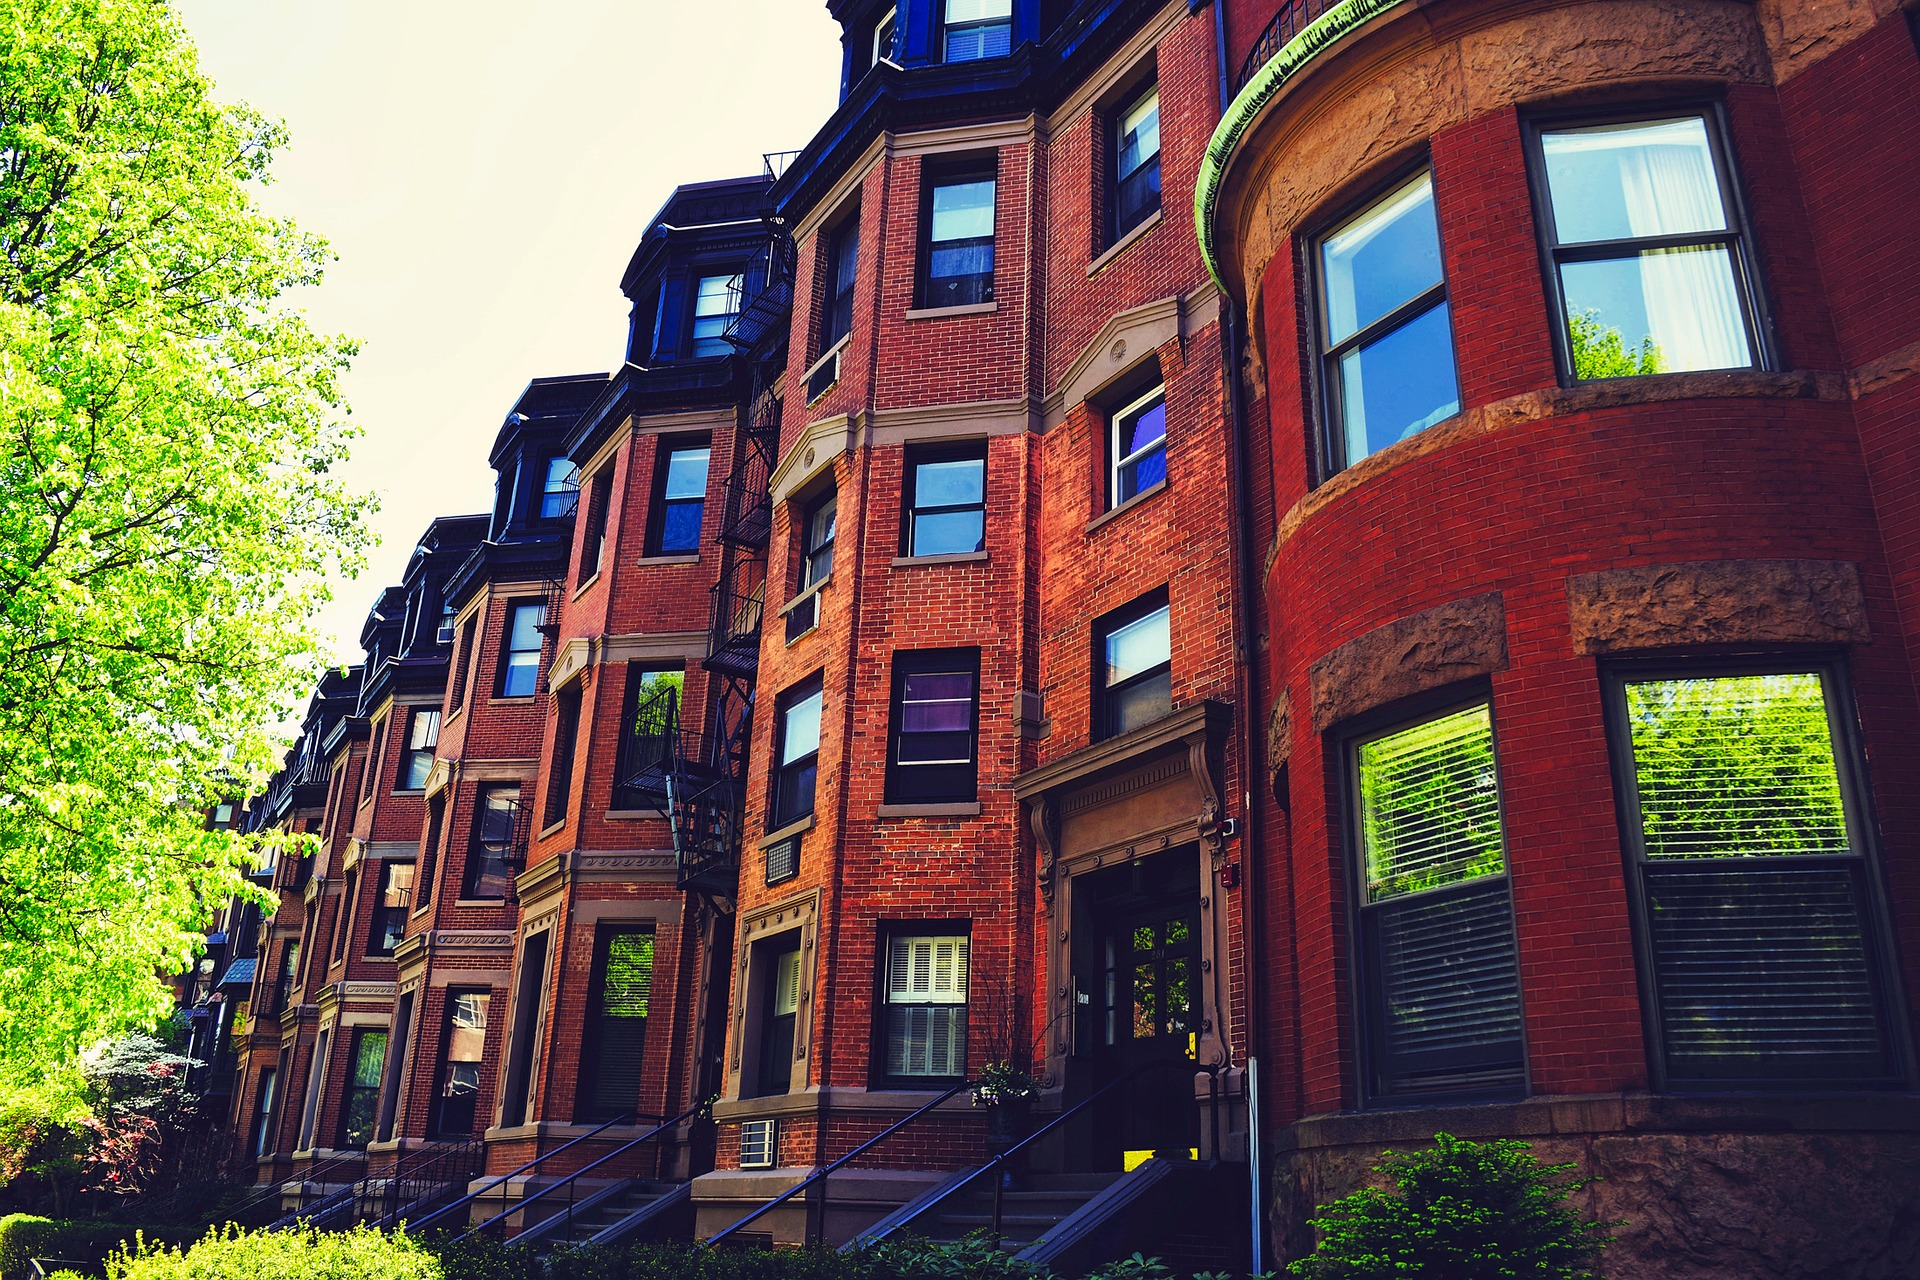 Red brick row houses in Boston